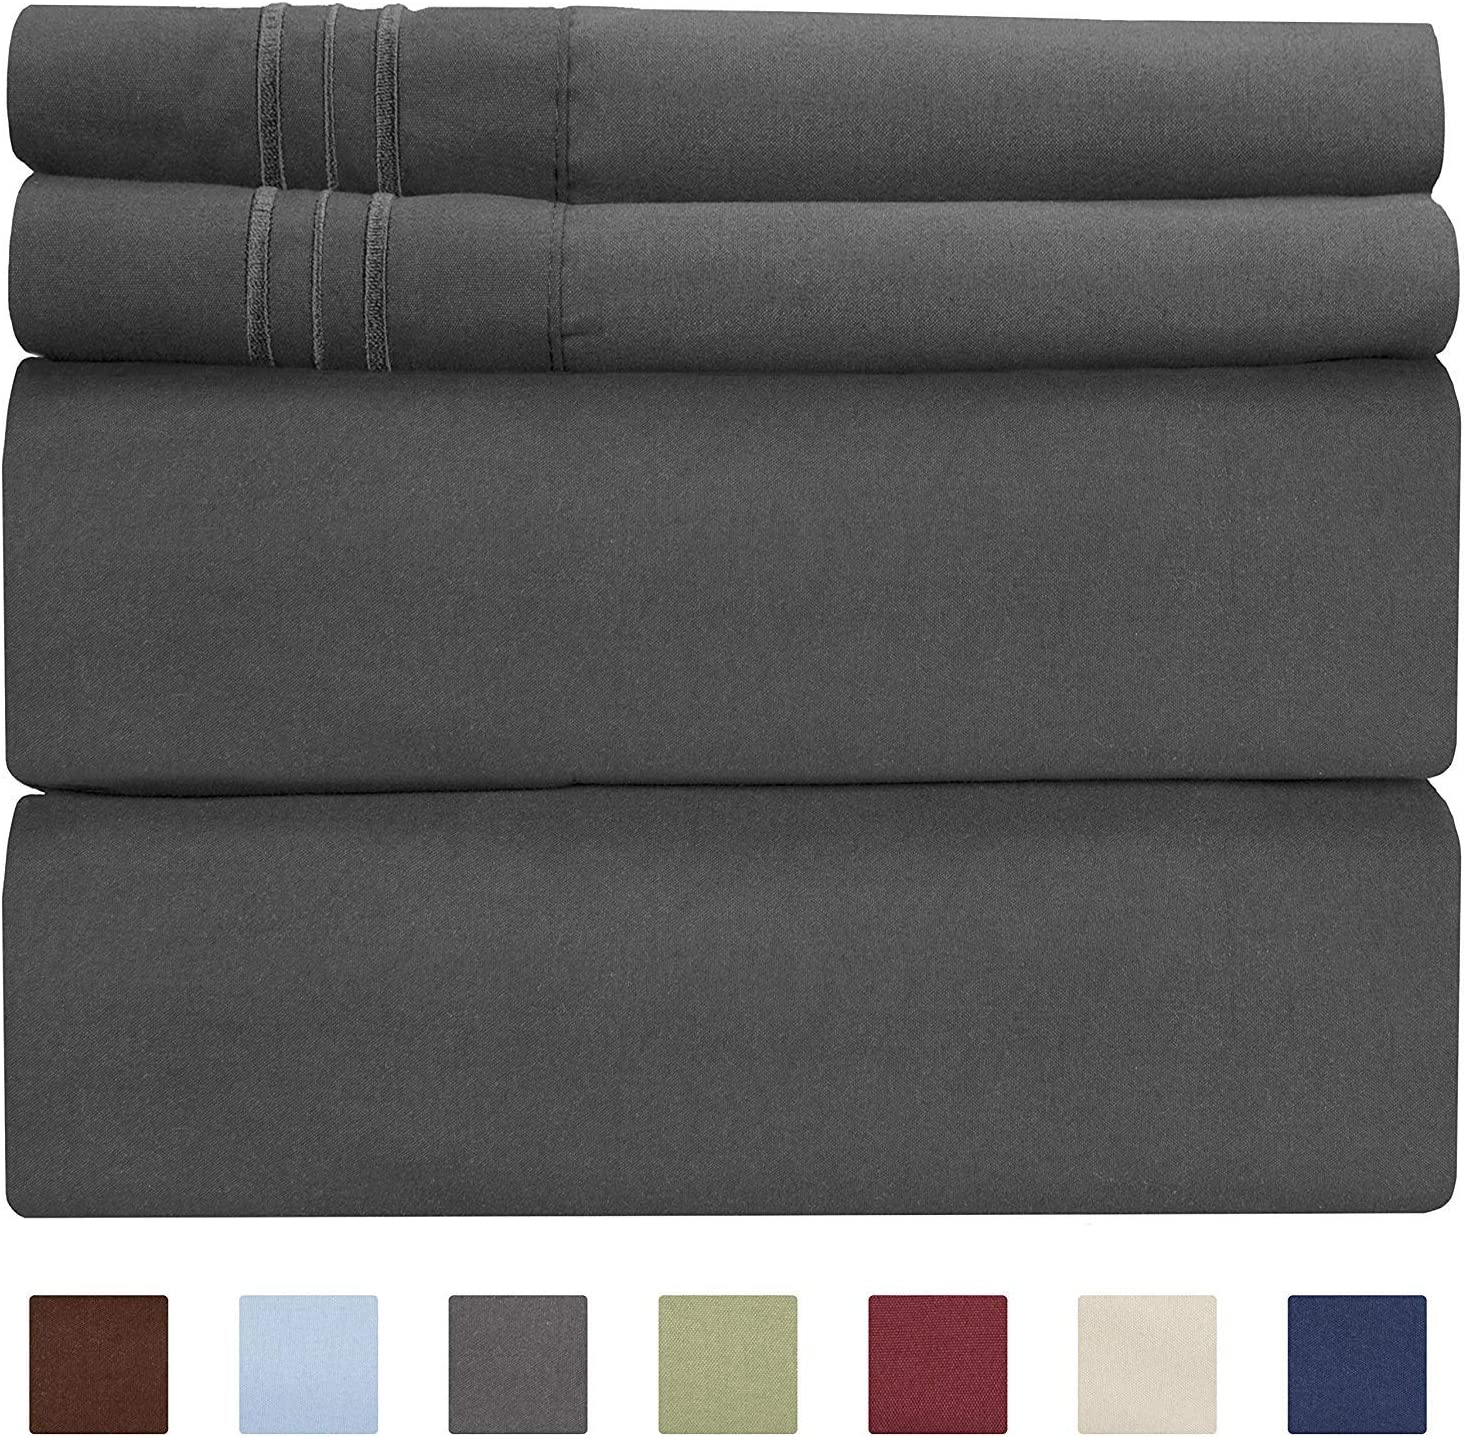 Extra Deep Pocket Sheets - 4 Piece Sheet Set - Queen Sheets Deep Pocket- Extra Deep Pocket Queen Sheets - Deep Fitted Sheet Set - Extra Deep Pocket Queen Size Sheets - Easily Fits Extra Deep Mattress